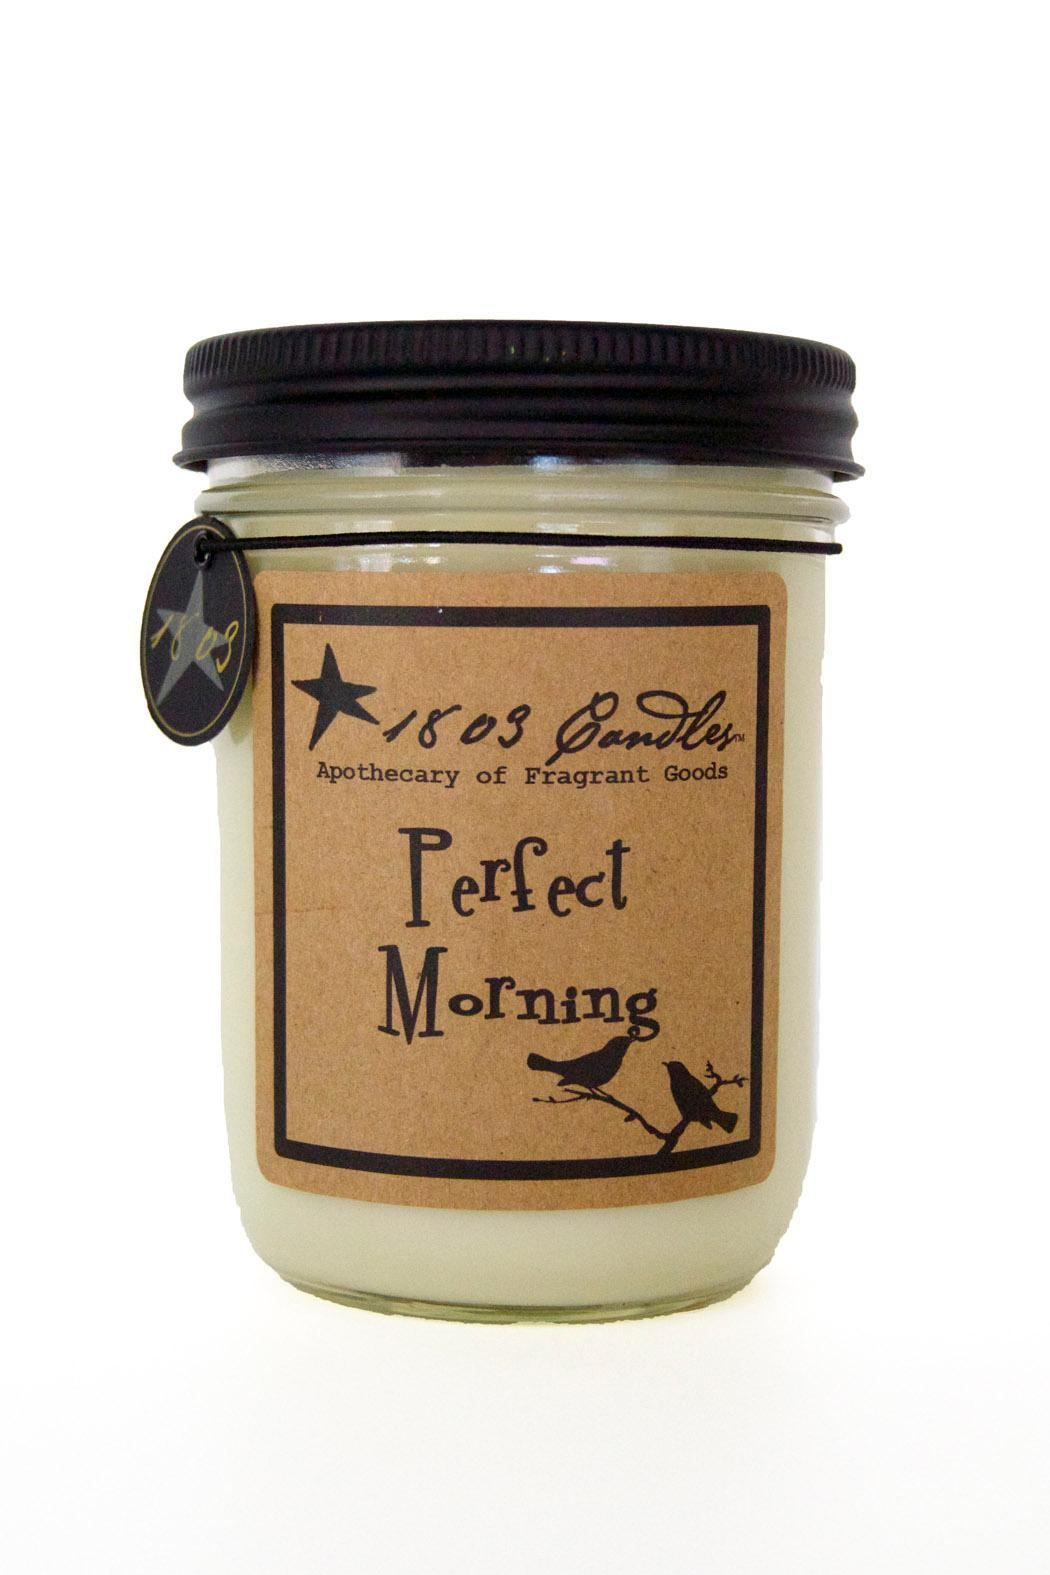 Candles offer the best scented soy candles, melts, botanicals, diffusers, and other home goods. Clean burning Soy Candles in custom Jars.